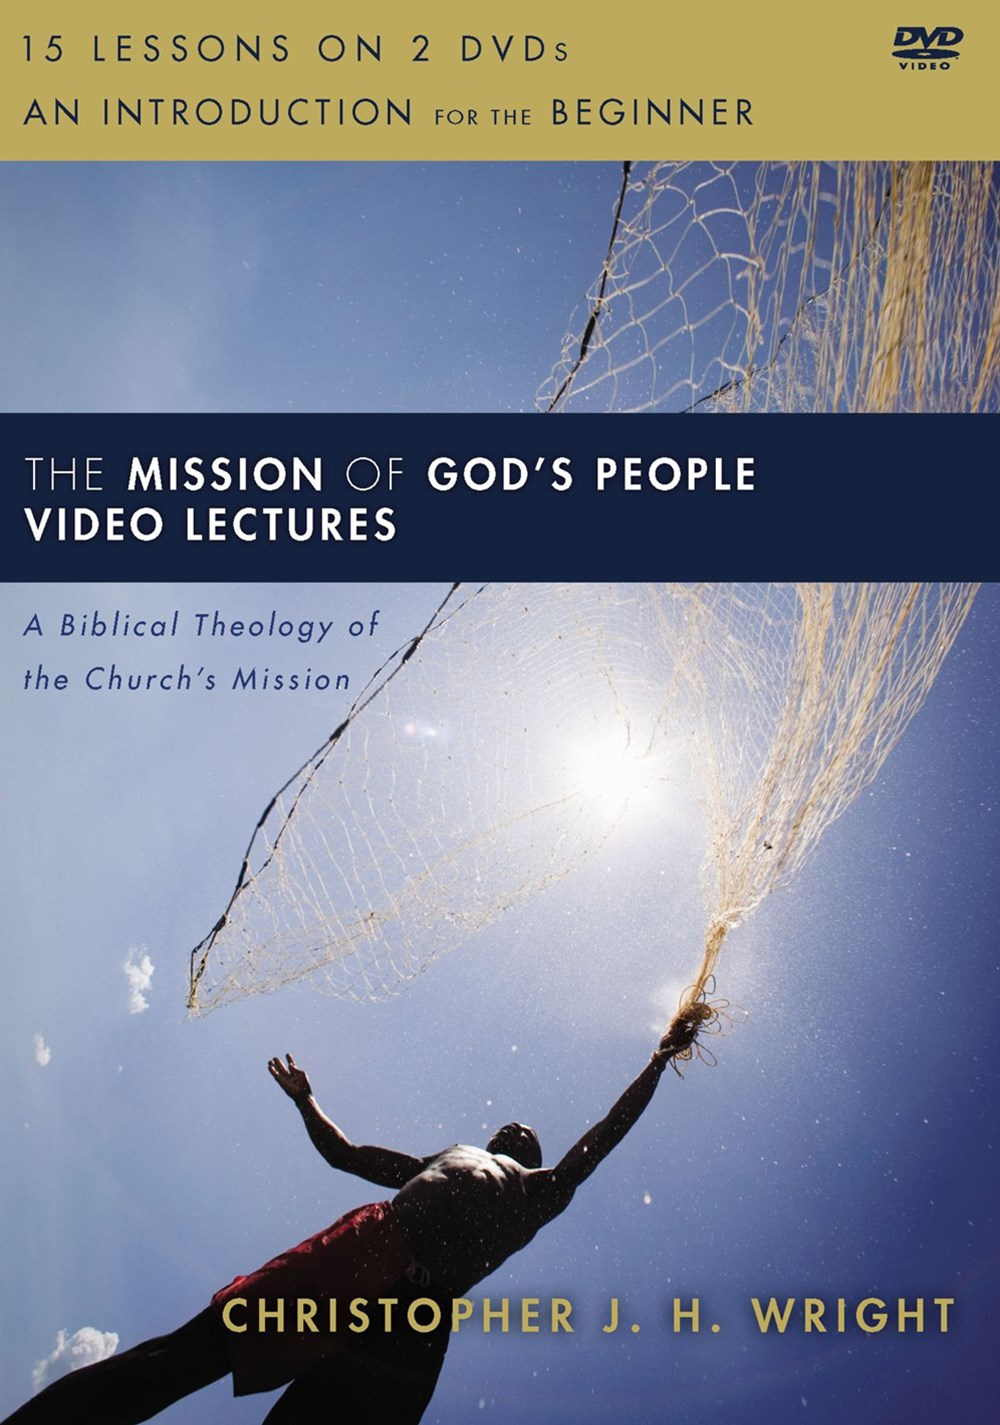 The Mission Of God's People Video Lectures: A Biblical Theology Of The Church's Mission